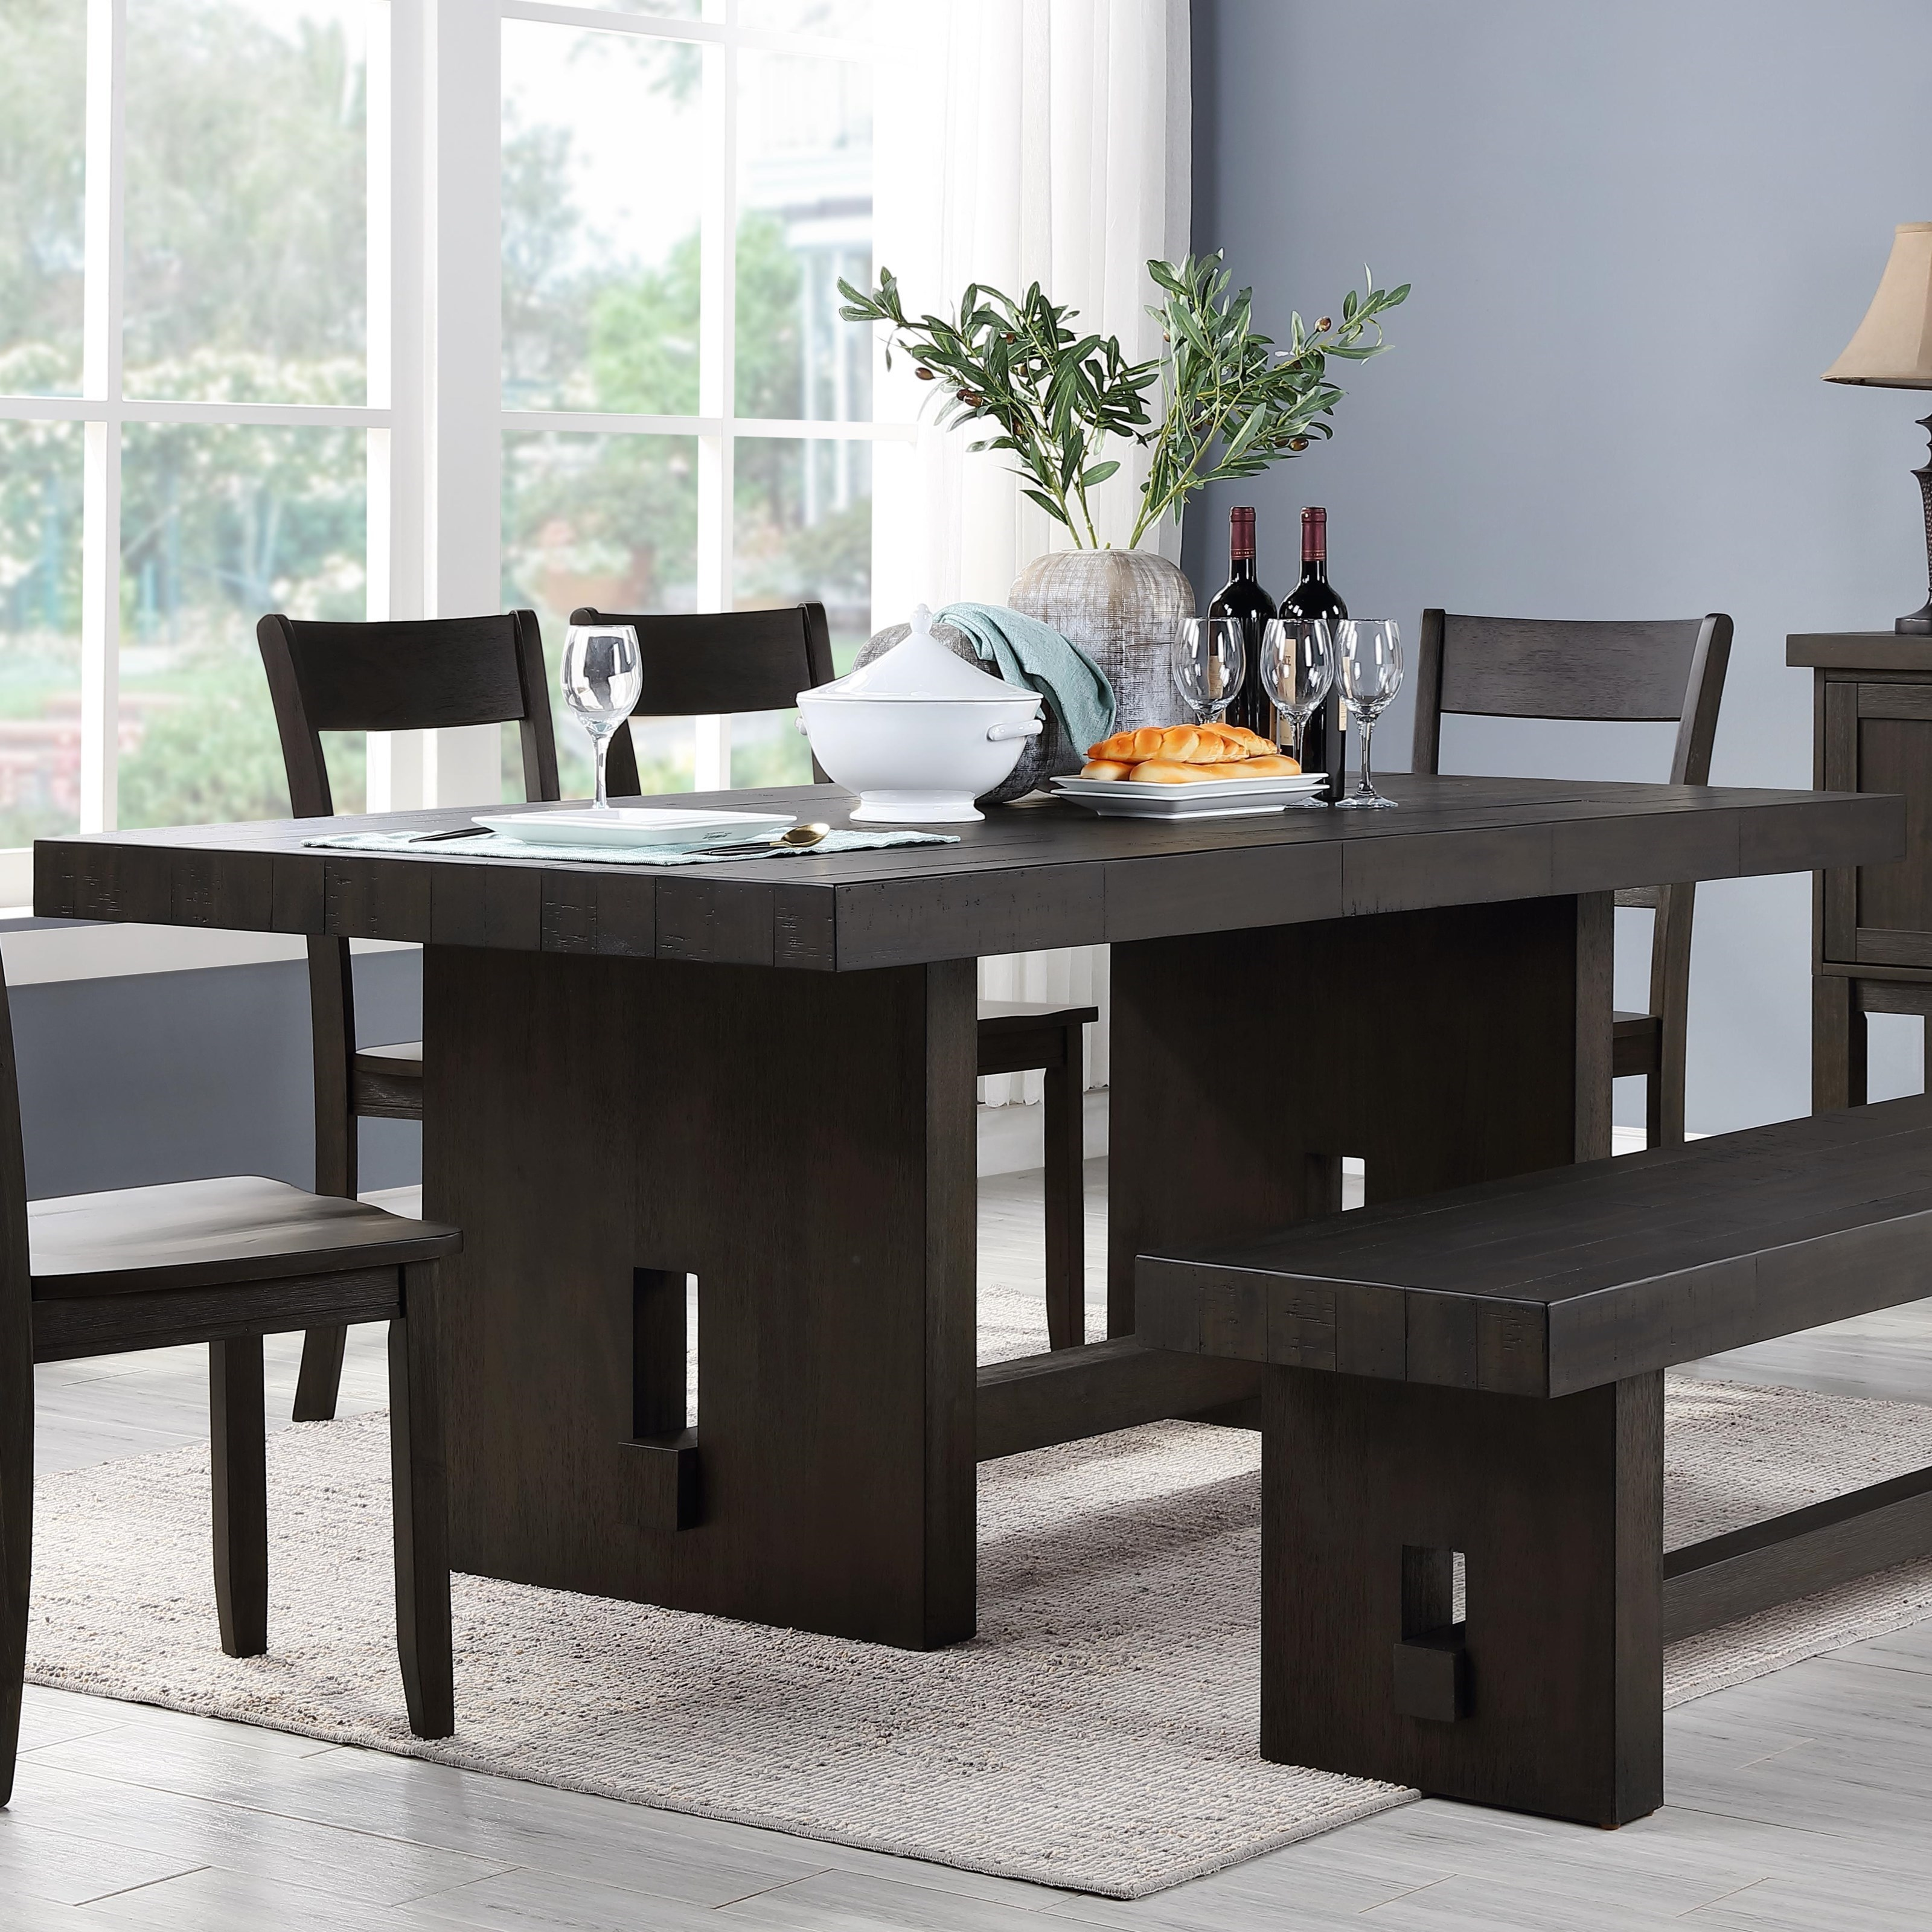 Haddie Dining Table by Acme Furniture at Carolina Direct